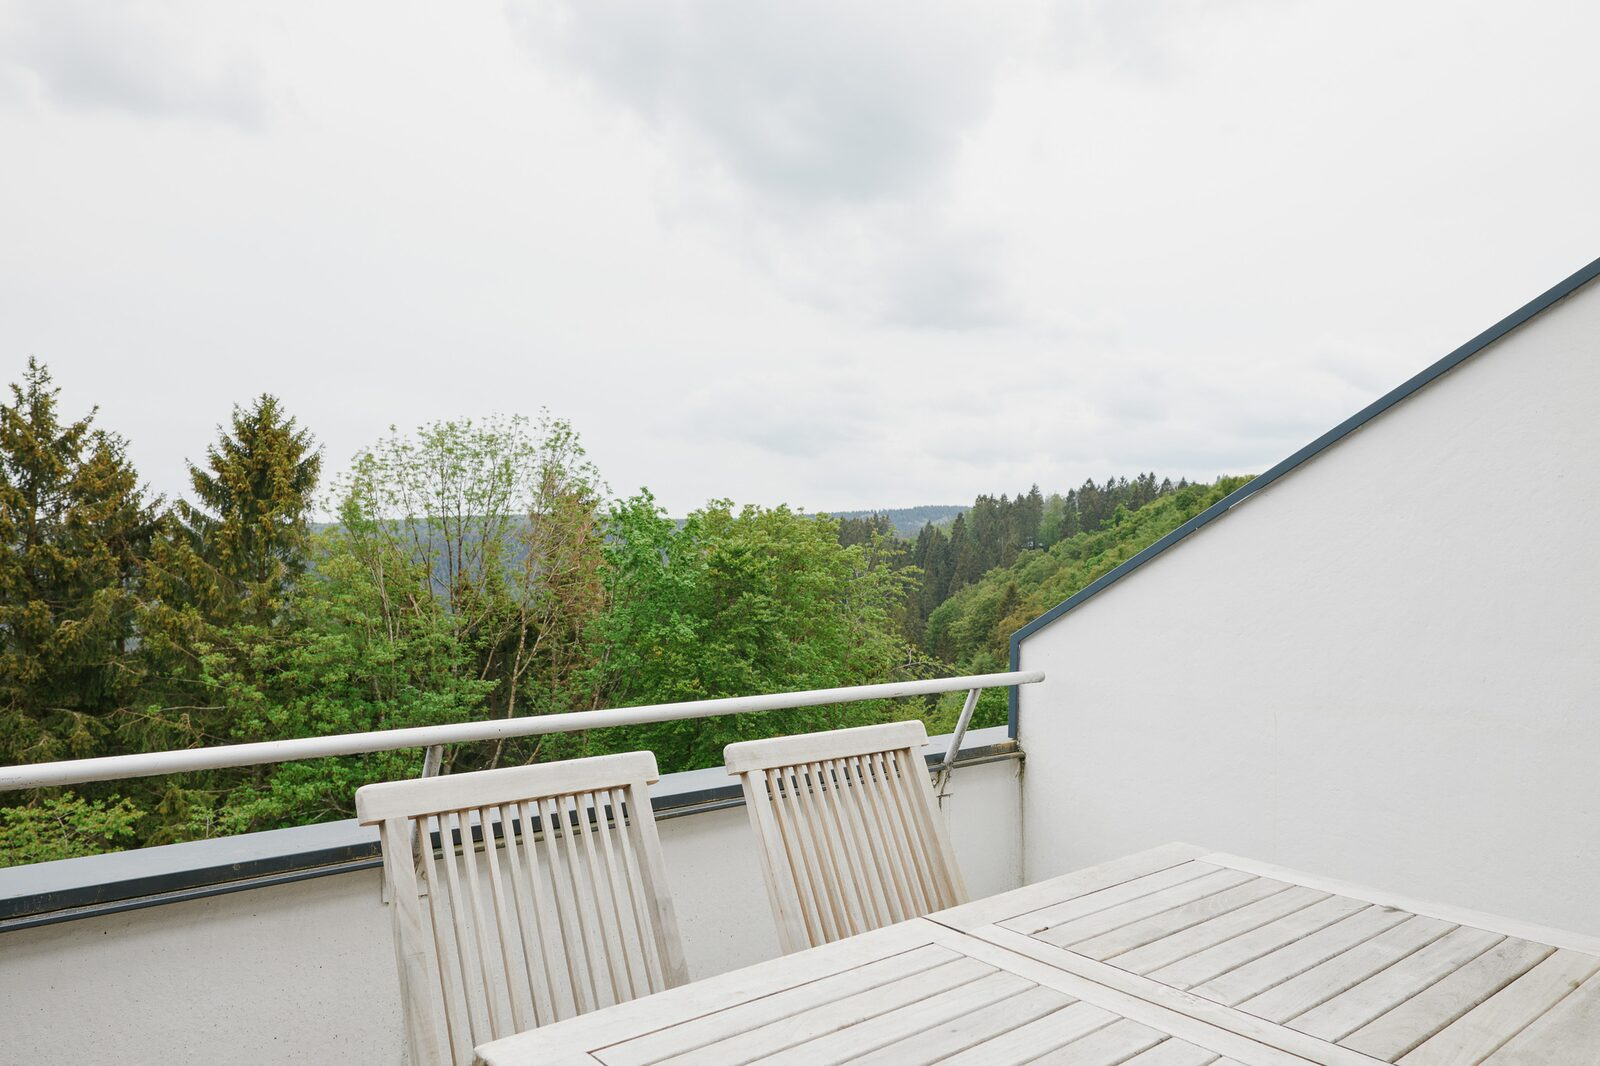 Appartement - Am Waltenberg 70-MA | 'The Condo"